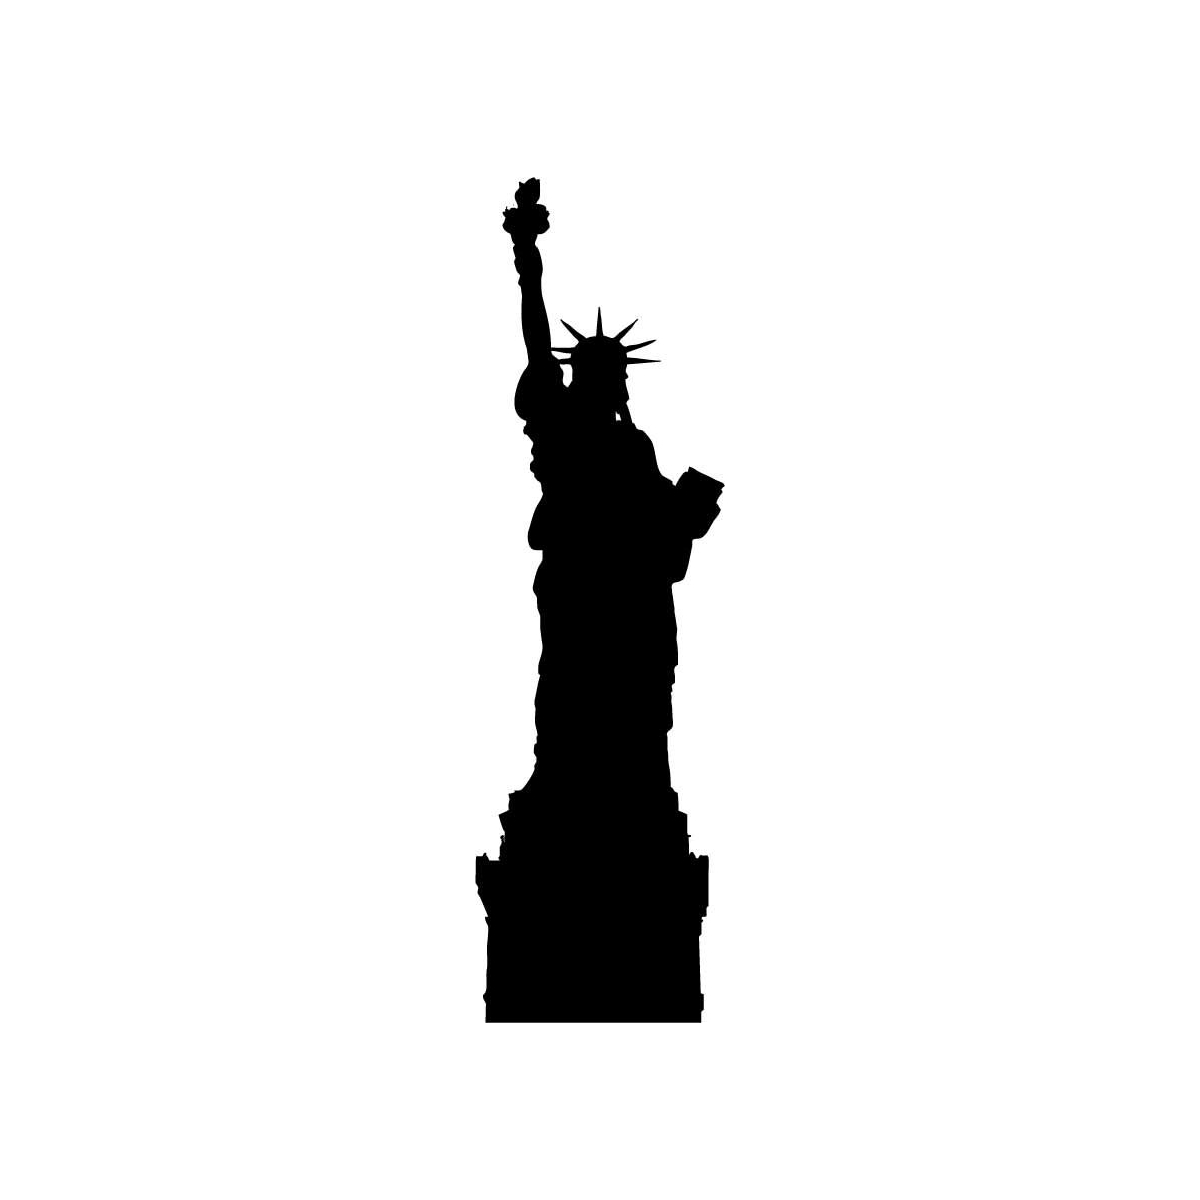 Figurine clipart silhouette Free 42 Cliparting 2 Liberty